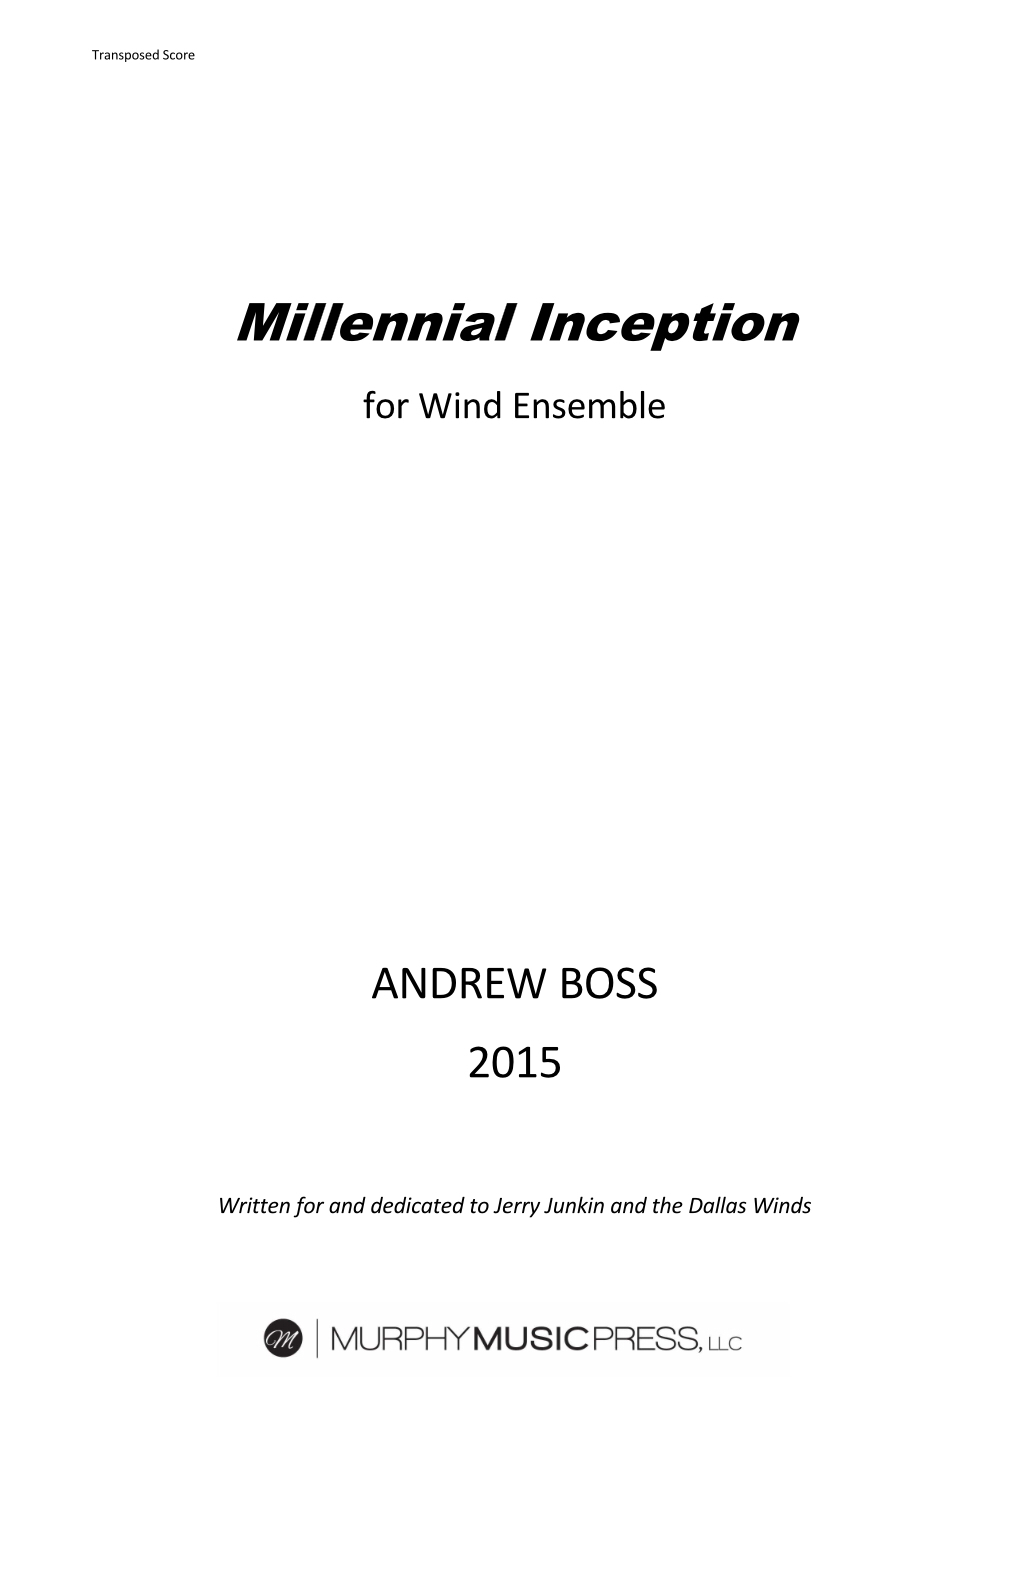 Millennial Inception (standard Instrumentation) by Andrew Boss